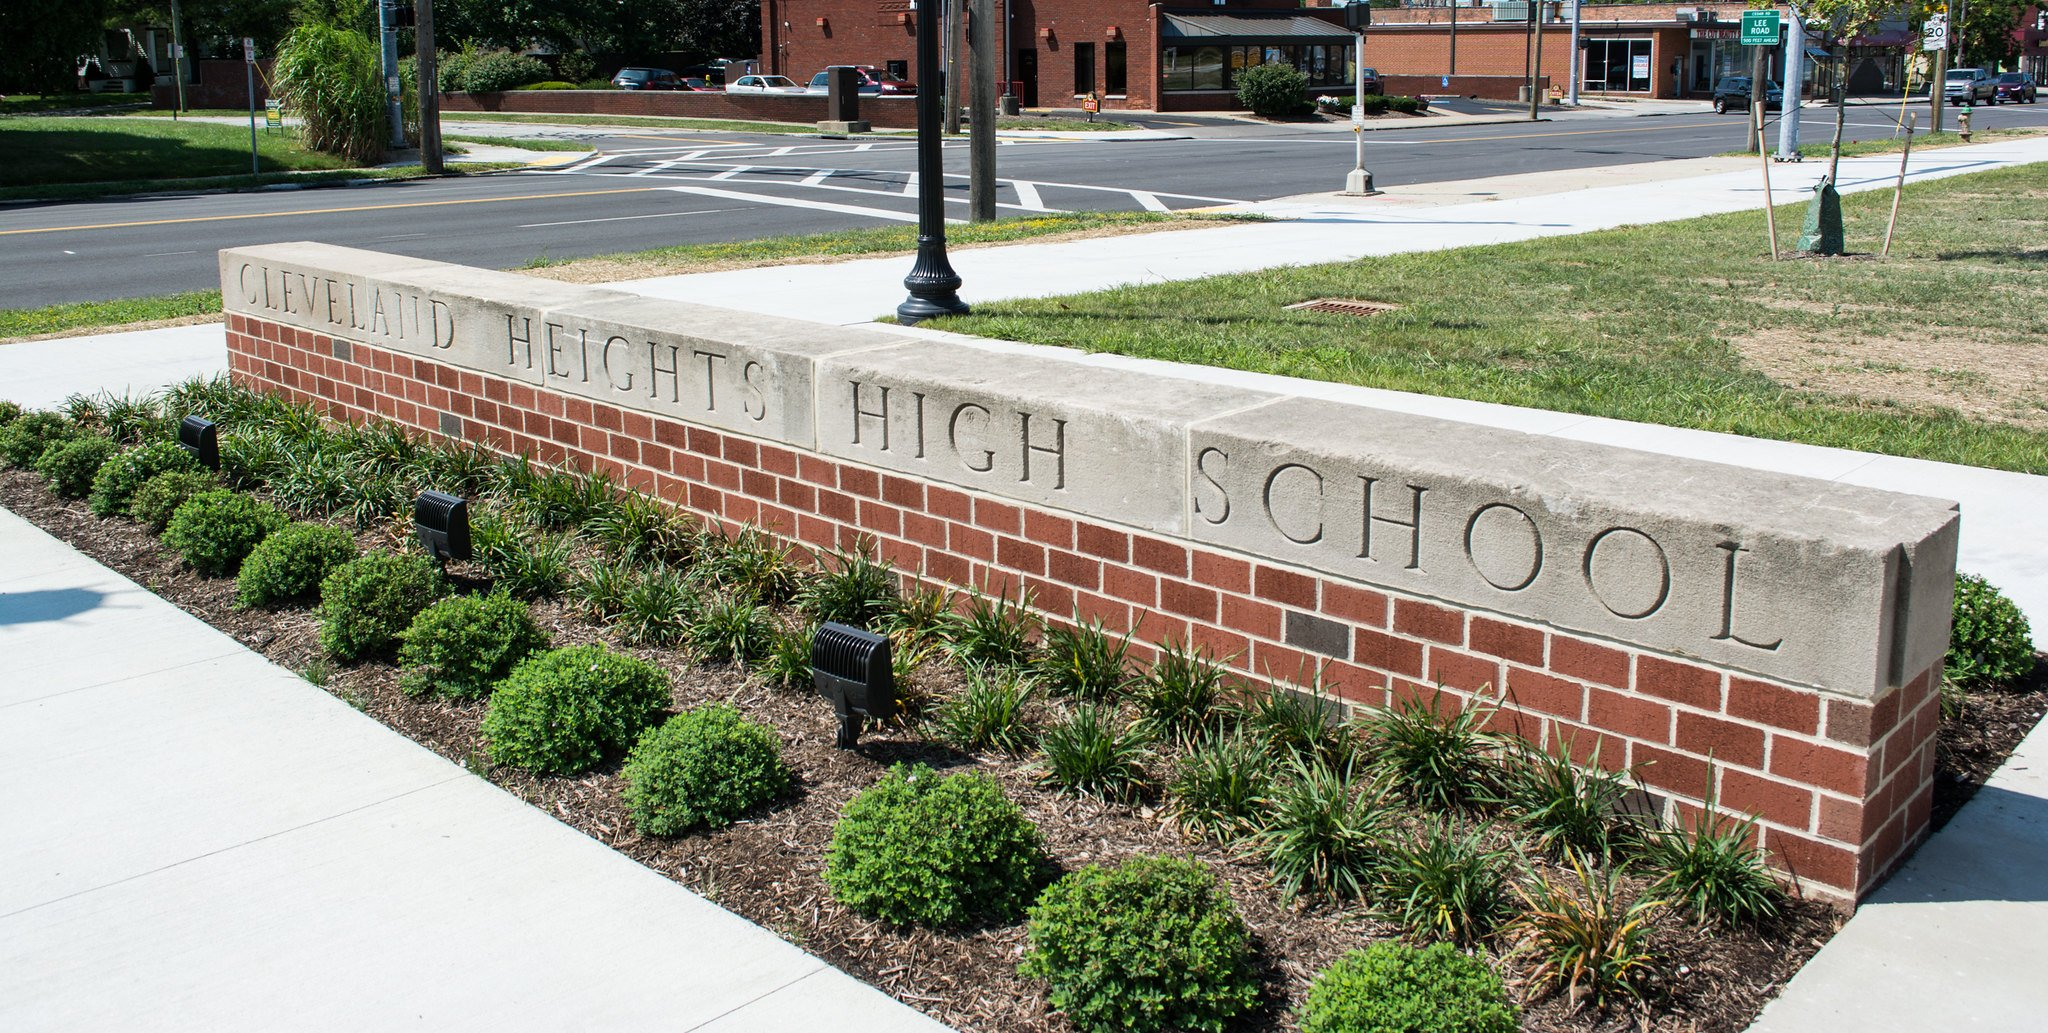 Cleveland Heights High School - Sign